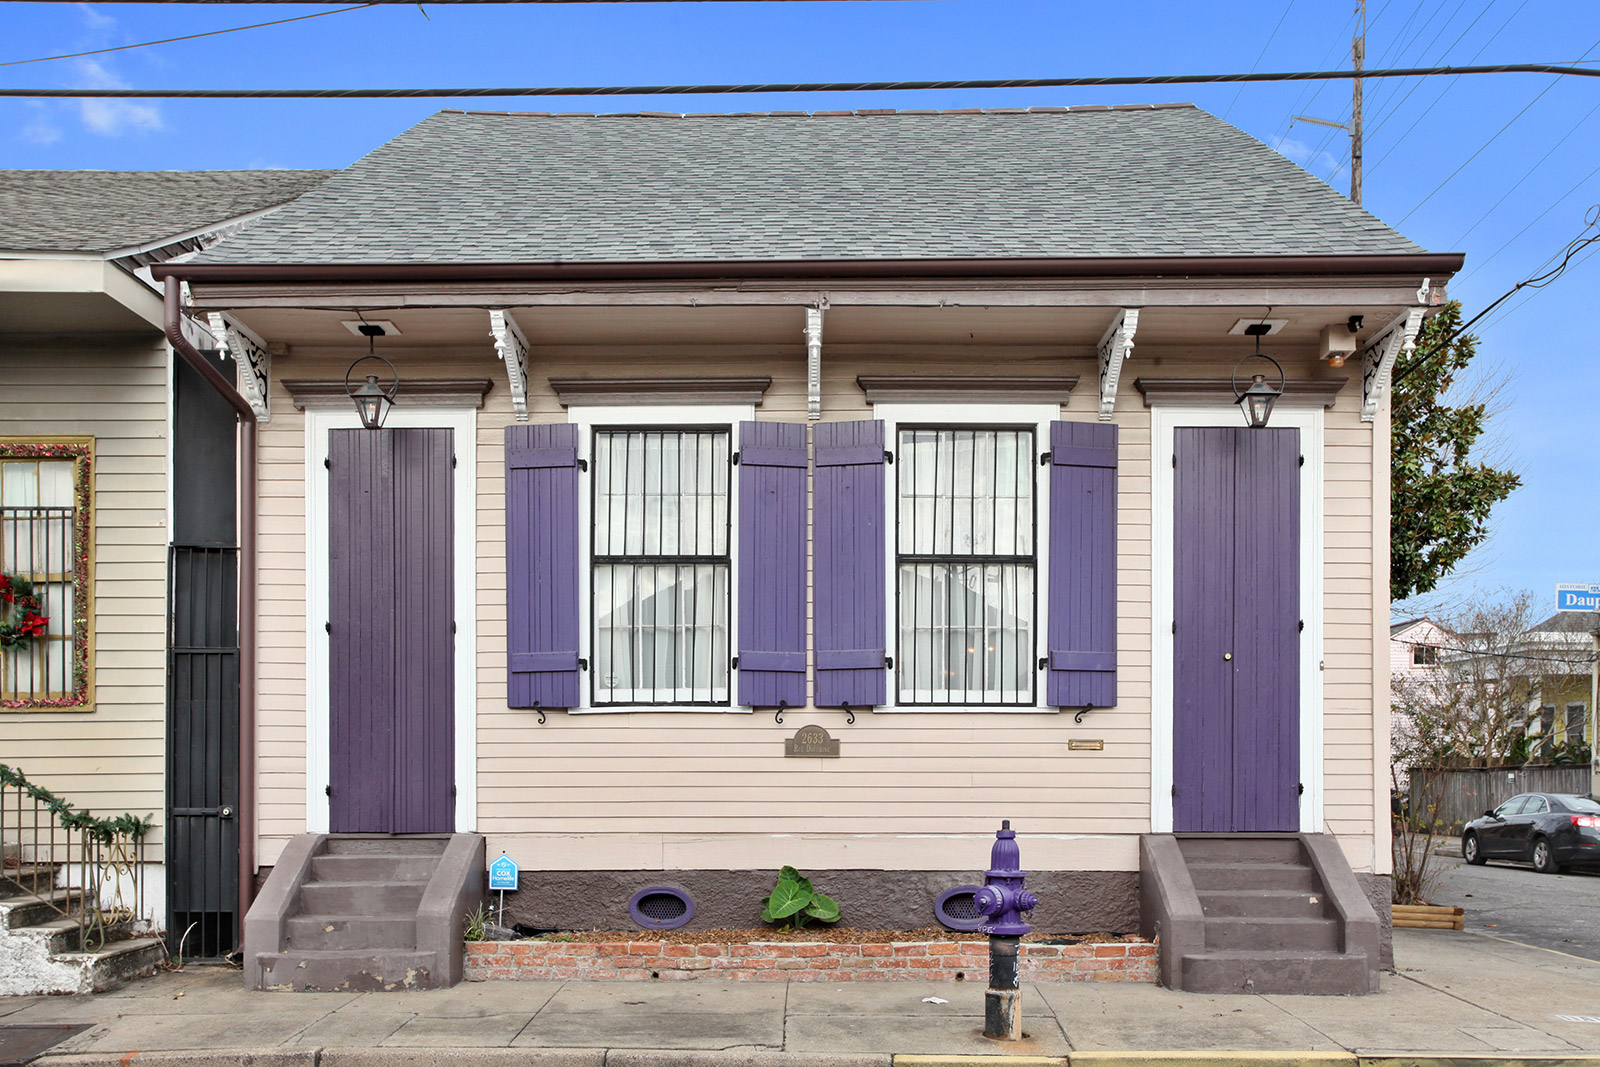 New Orleans Homes Neighborhoods Architecture And Real